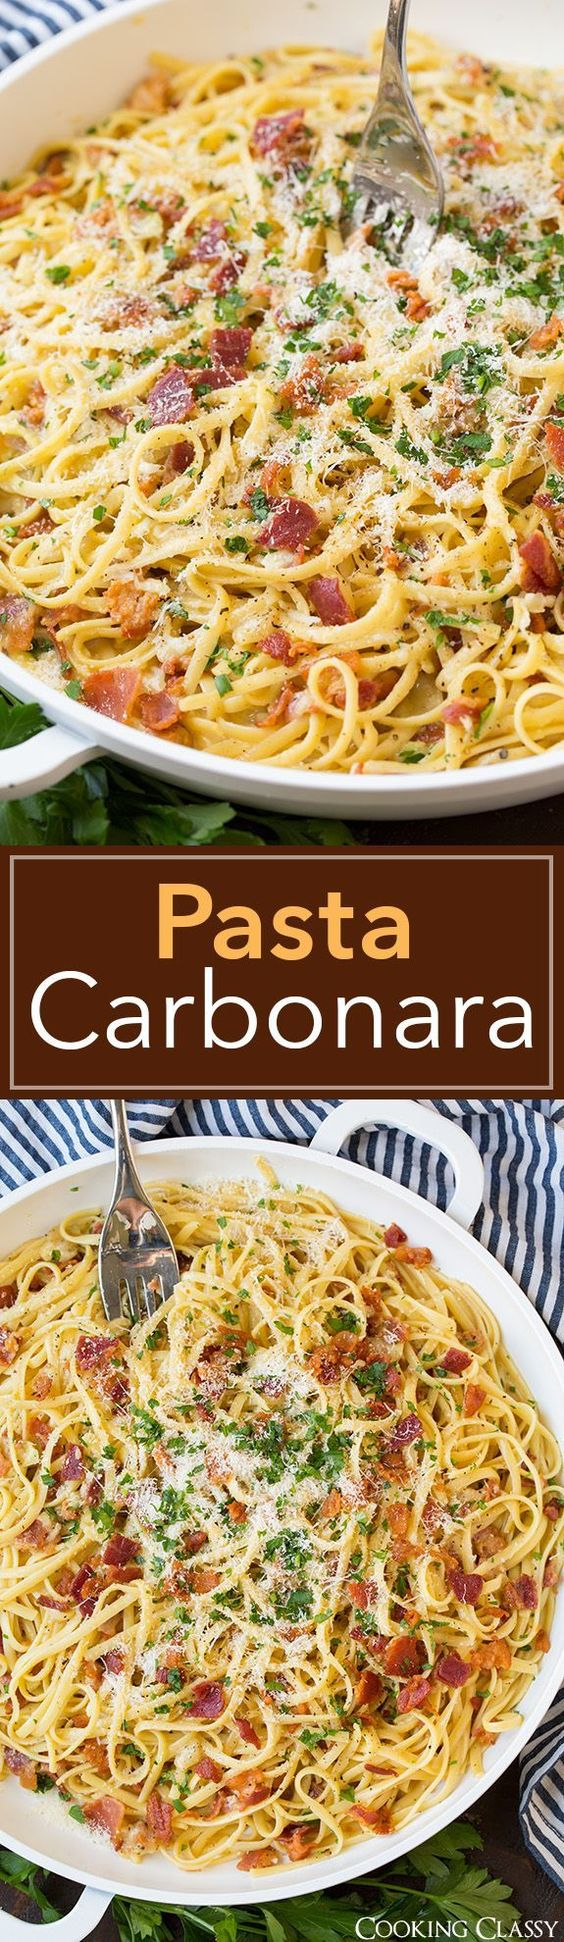 Pasta Carbonara - this is the BEST Pasta Carbonara! Easy enough for a weeknight meal yet delicious enough to serve to guests on the weekend!: